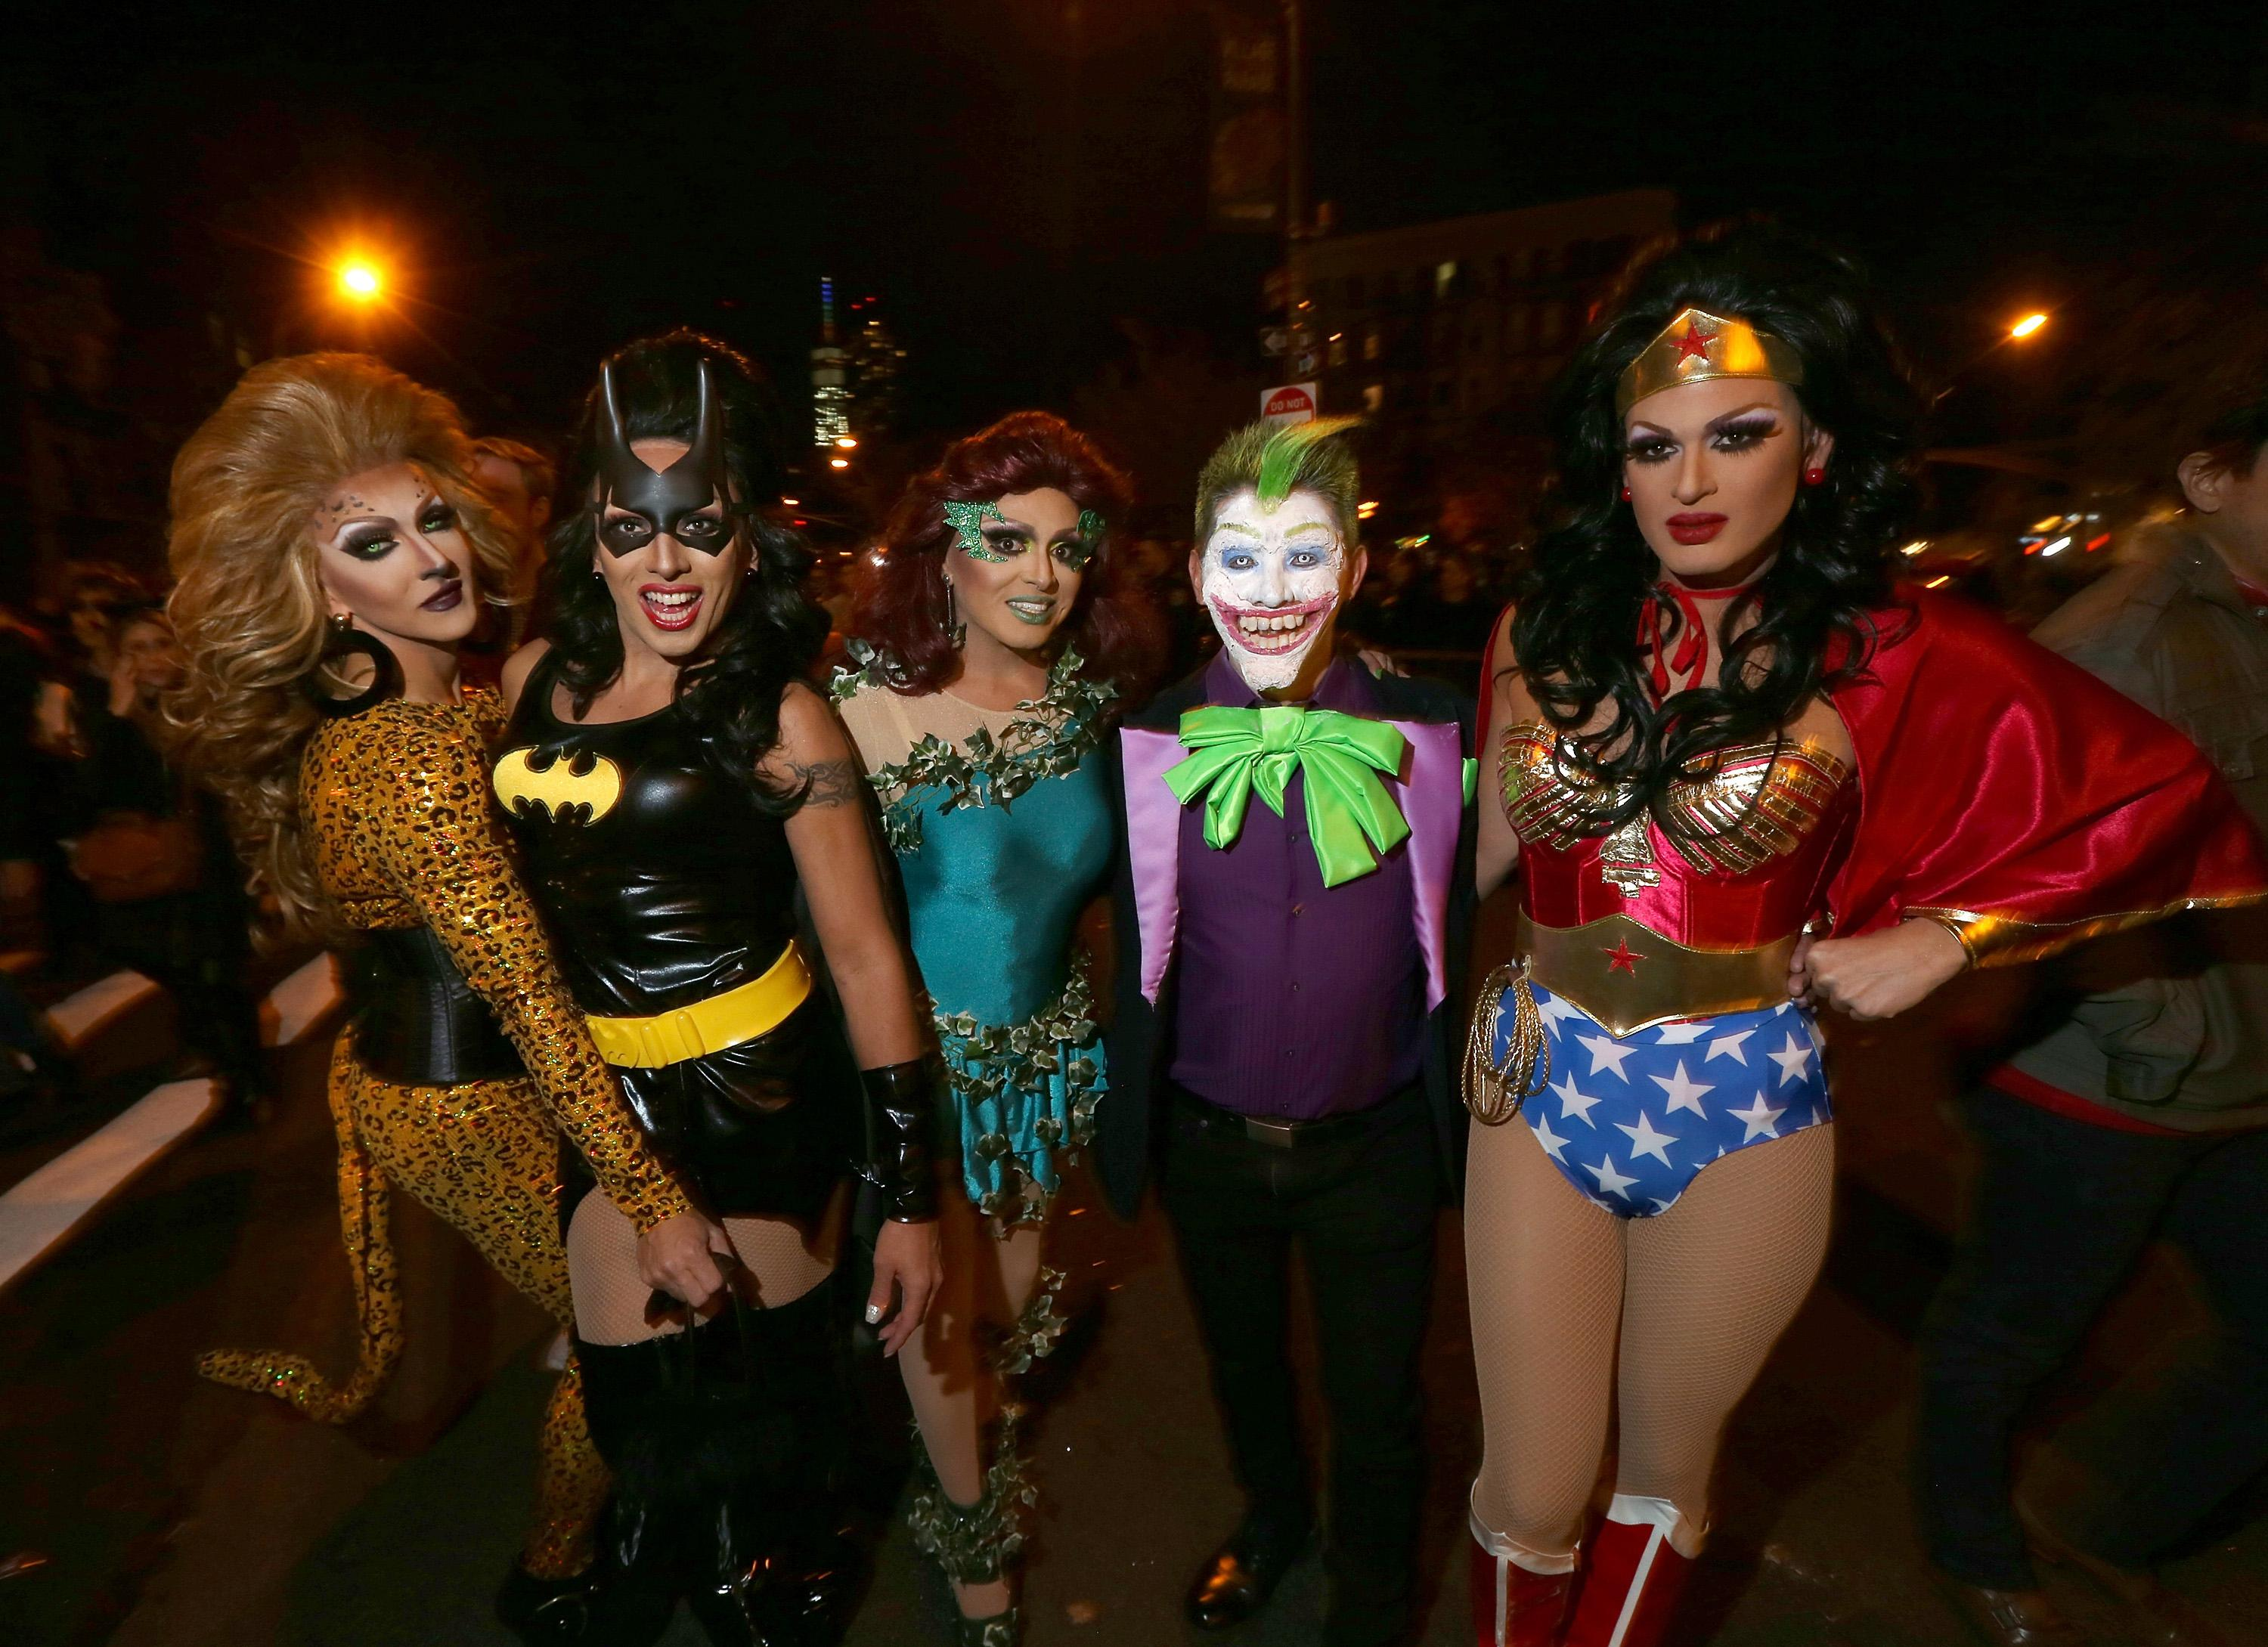 New York City Halloween Parade.New York City Halloween Parade 2015 Best Costumes Moments From